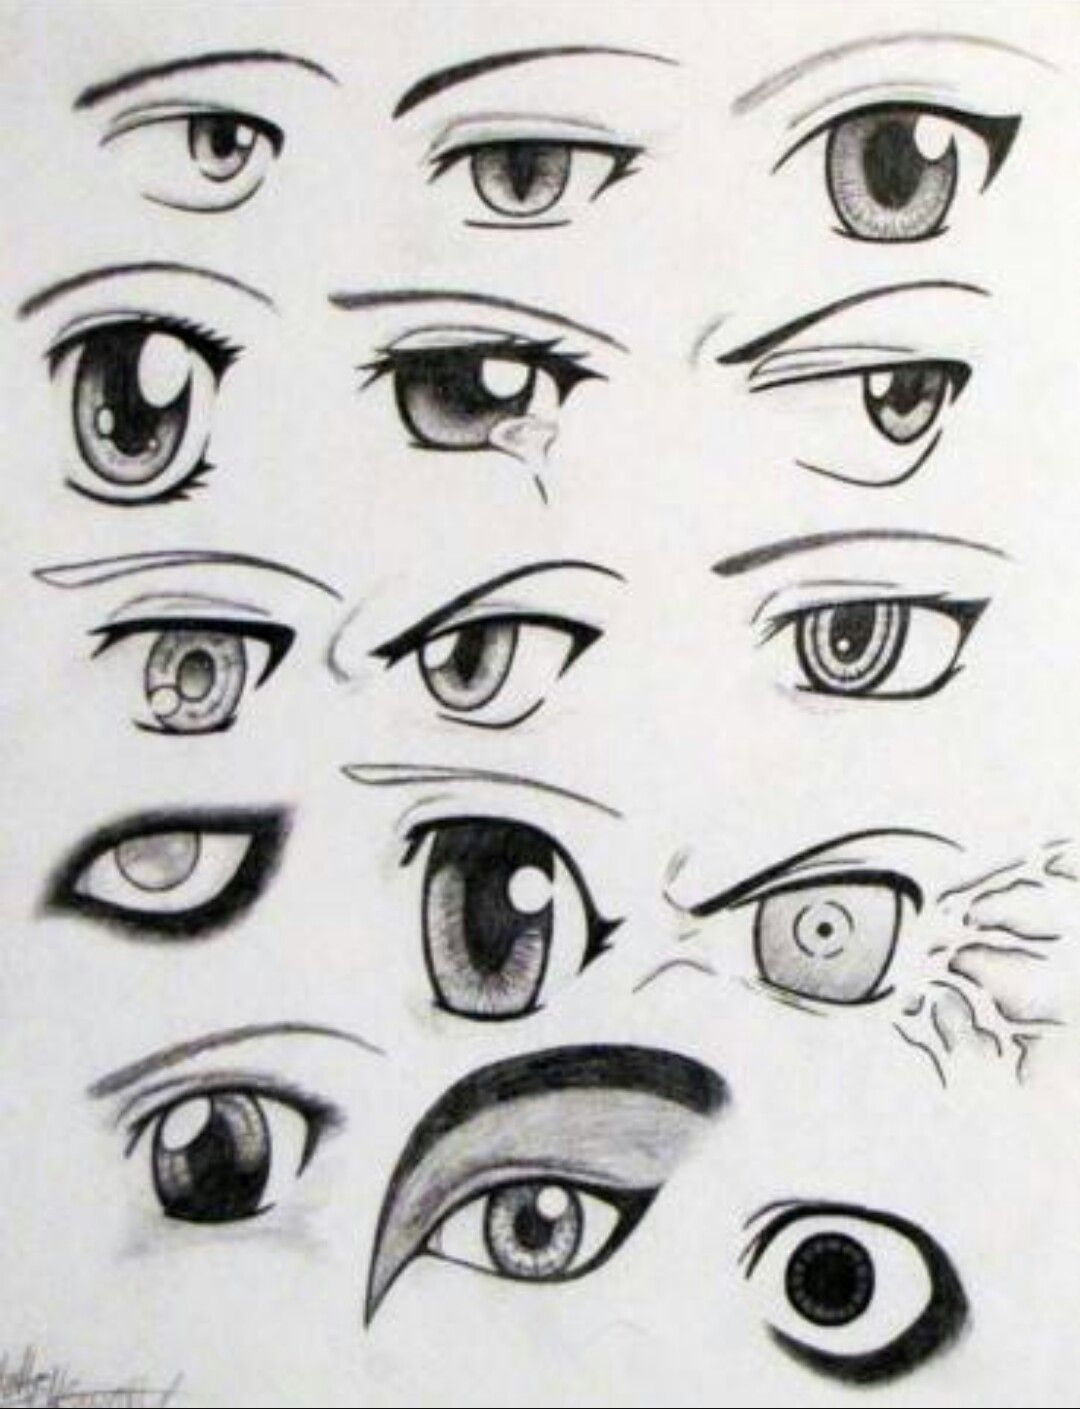 Different Eyes Anime Manga Eyes Emotions Art Blackandwhite Pencil Paper Anime Eyes Easy Anime Eyes Eye Drawing